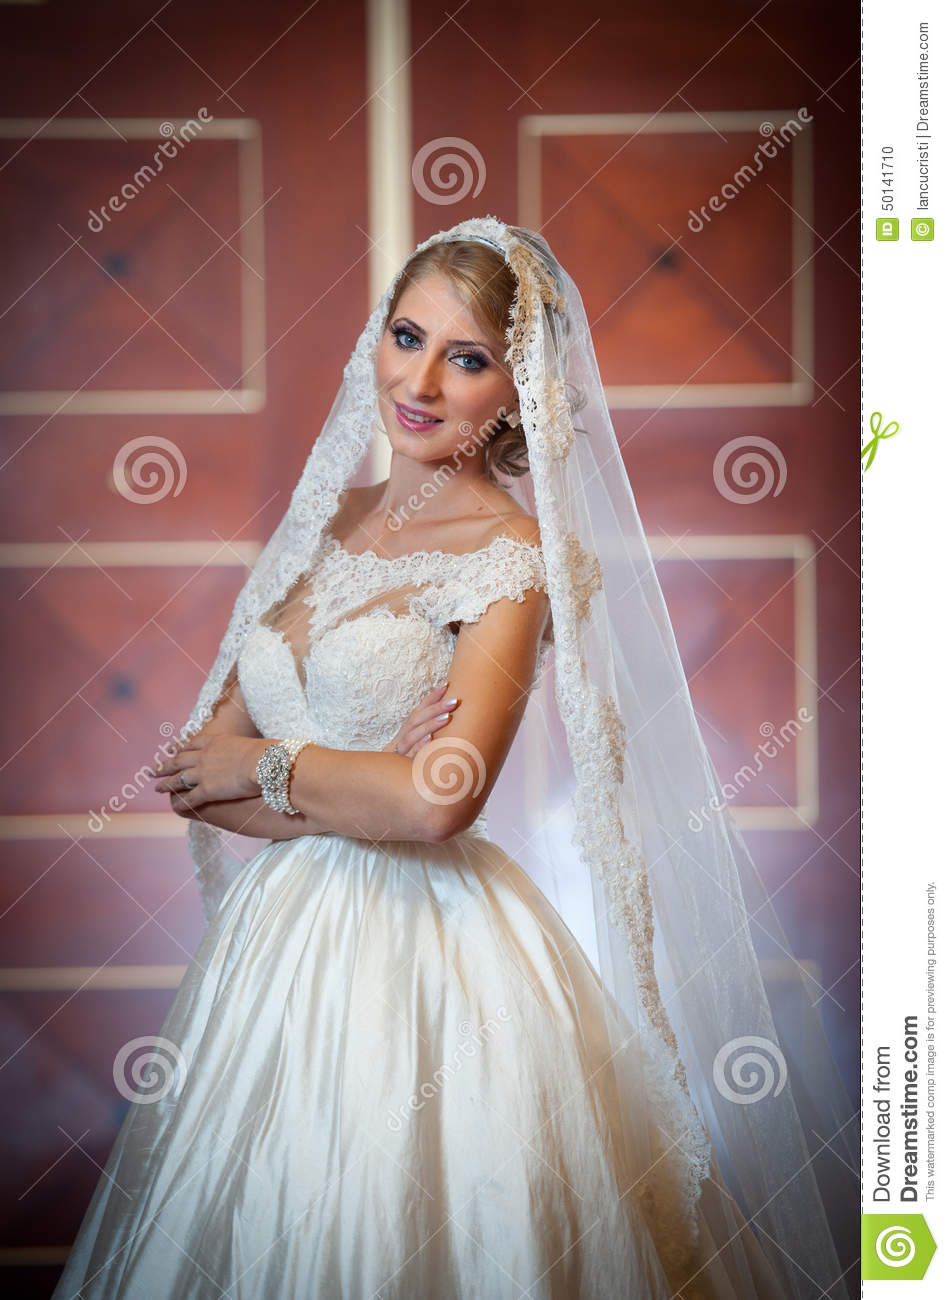 marriage wedding and young woman dreams This dream could appear just as that, without the whole wedding ceremony in a dream it is quite common among women, young and old, married and single alike this dream could simply signify a strong will to get married or a beautiful memory if you're already married.